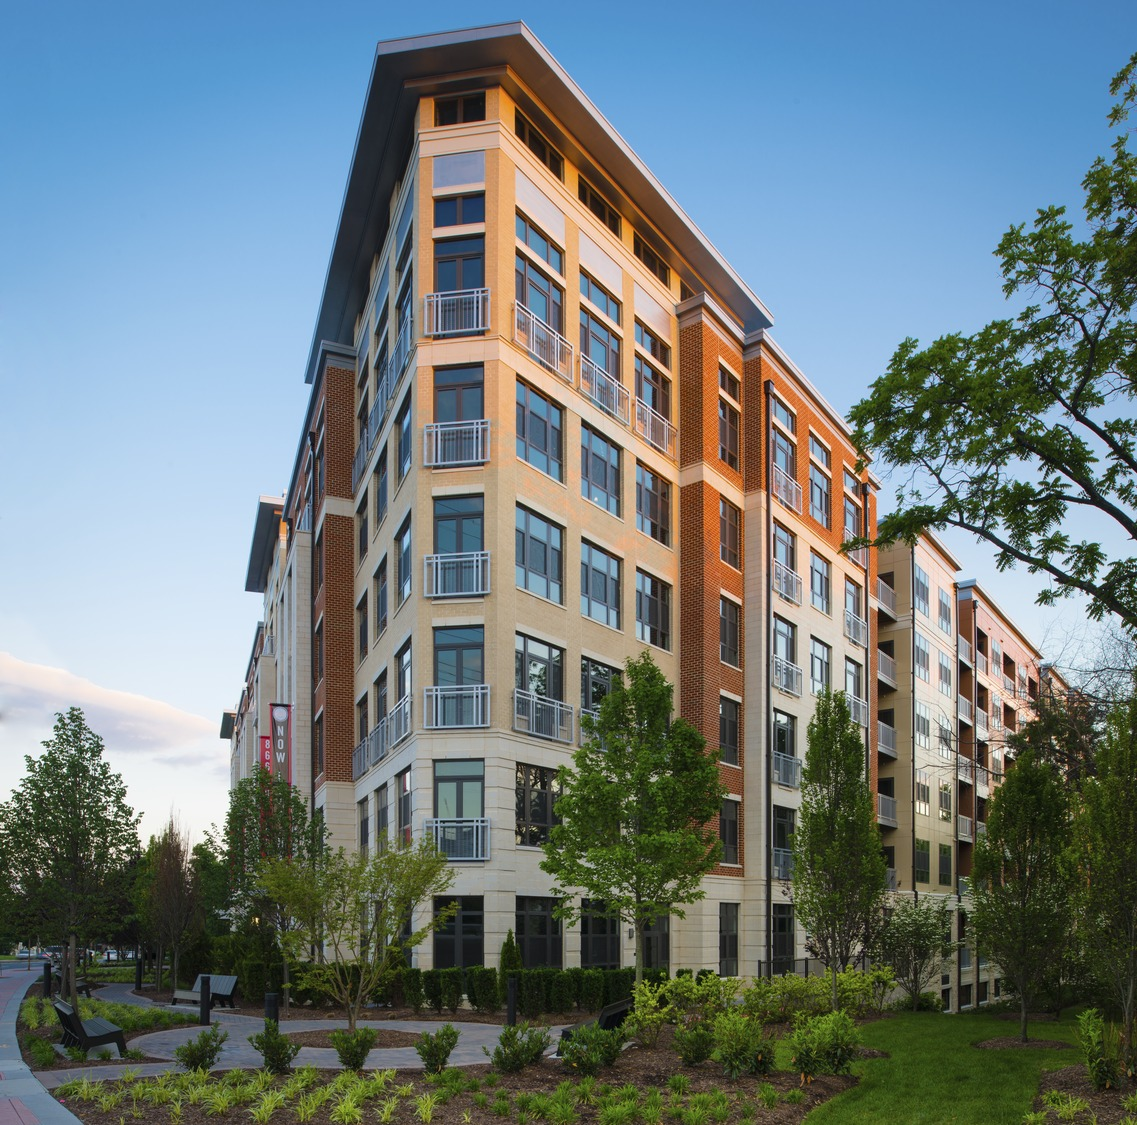 CBG builds Solaire Wheaton, a 232 Luxury Apartments above Parking Garage in Wheaton, MD